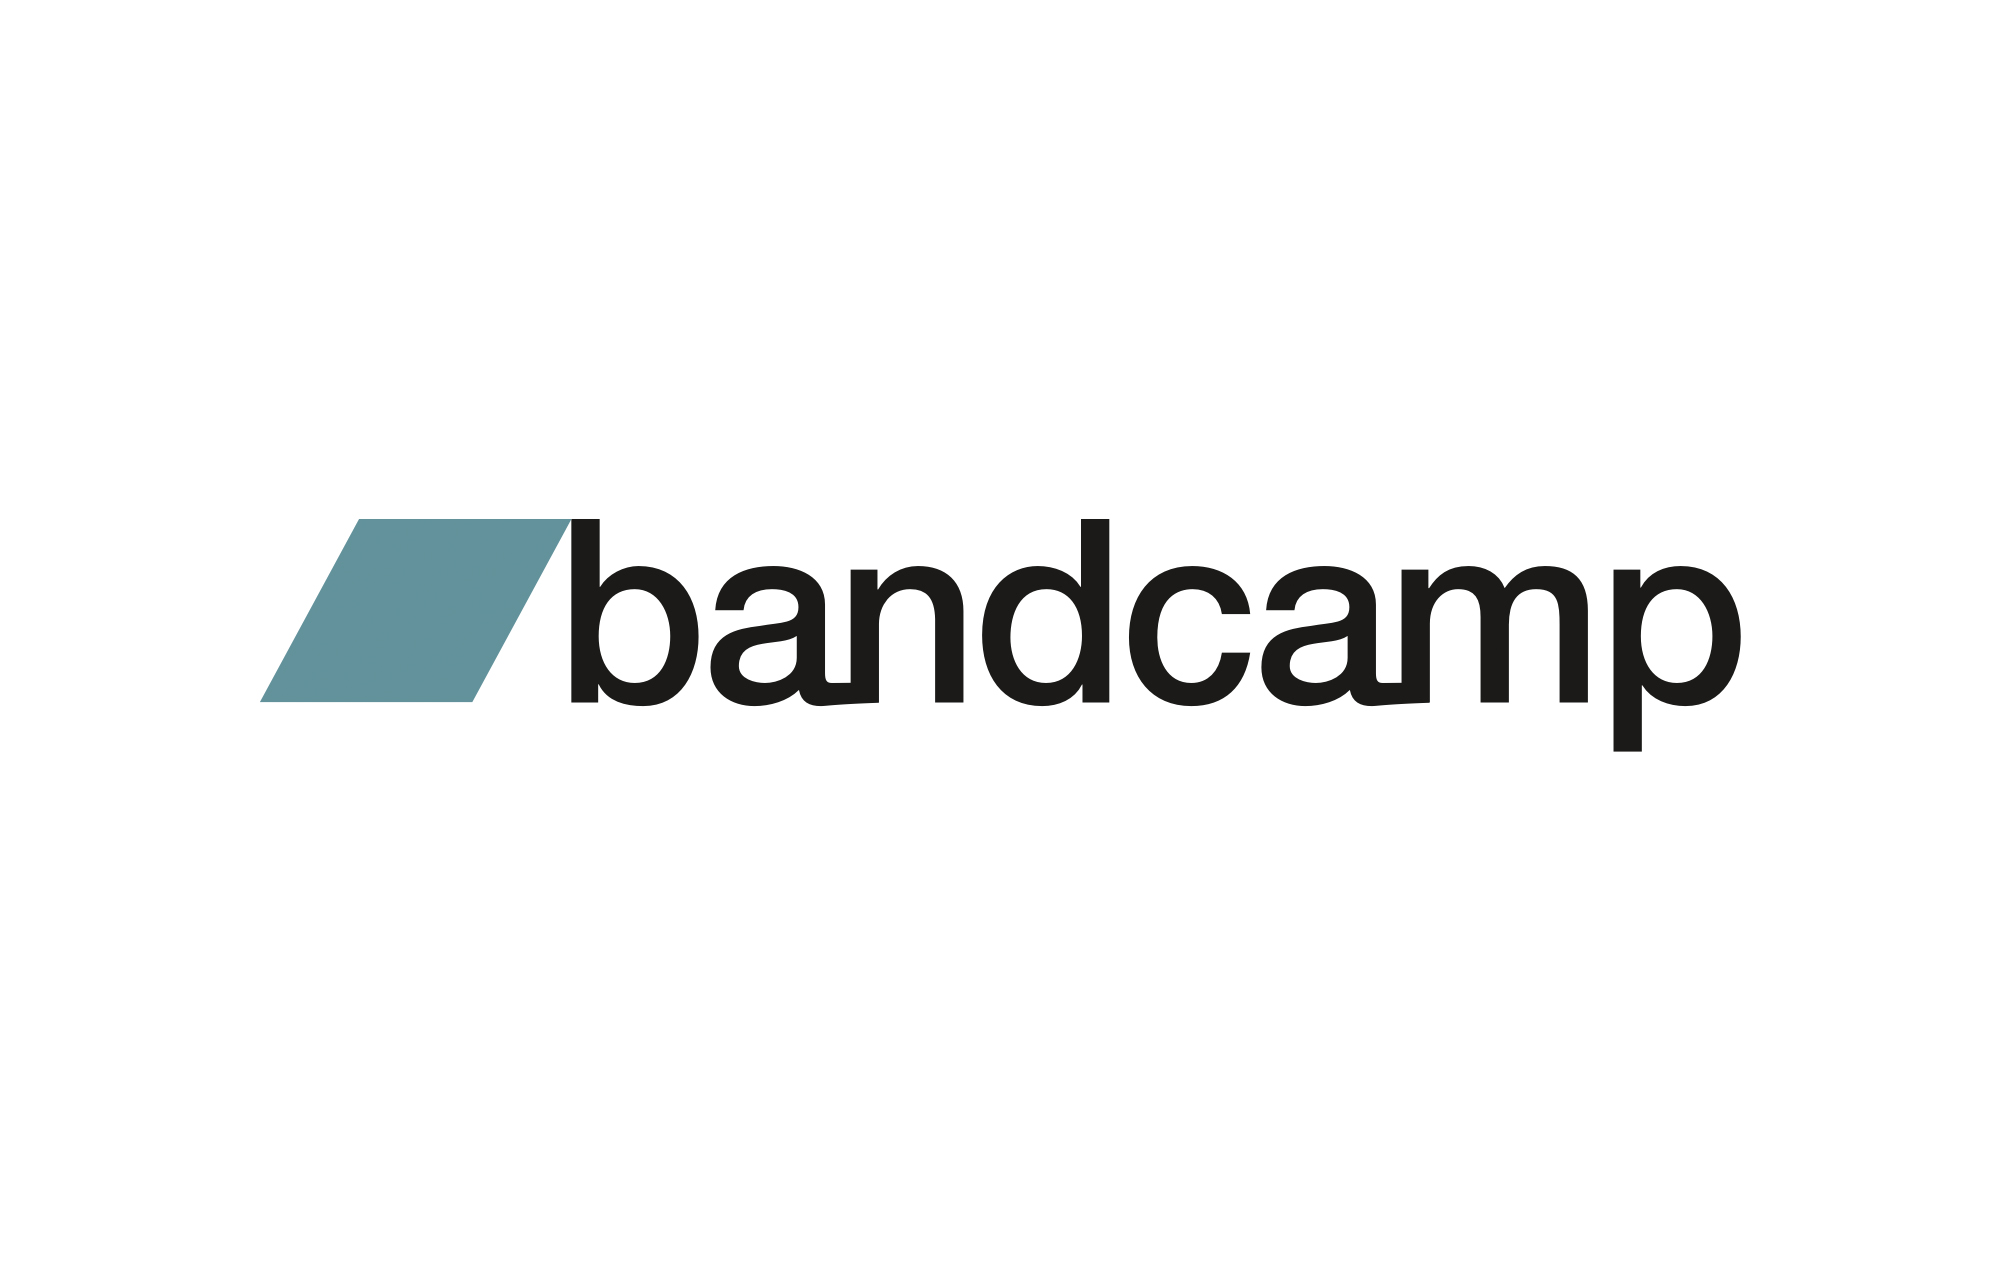 Bandcamp Waive Their Revenue Share Again on Friday